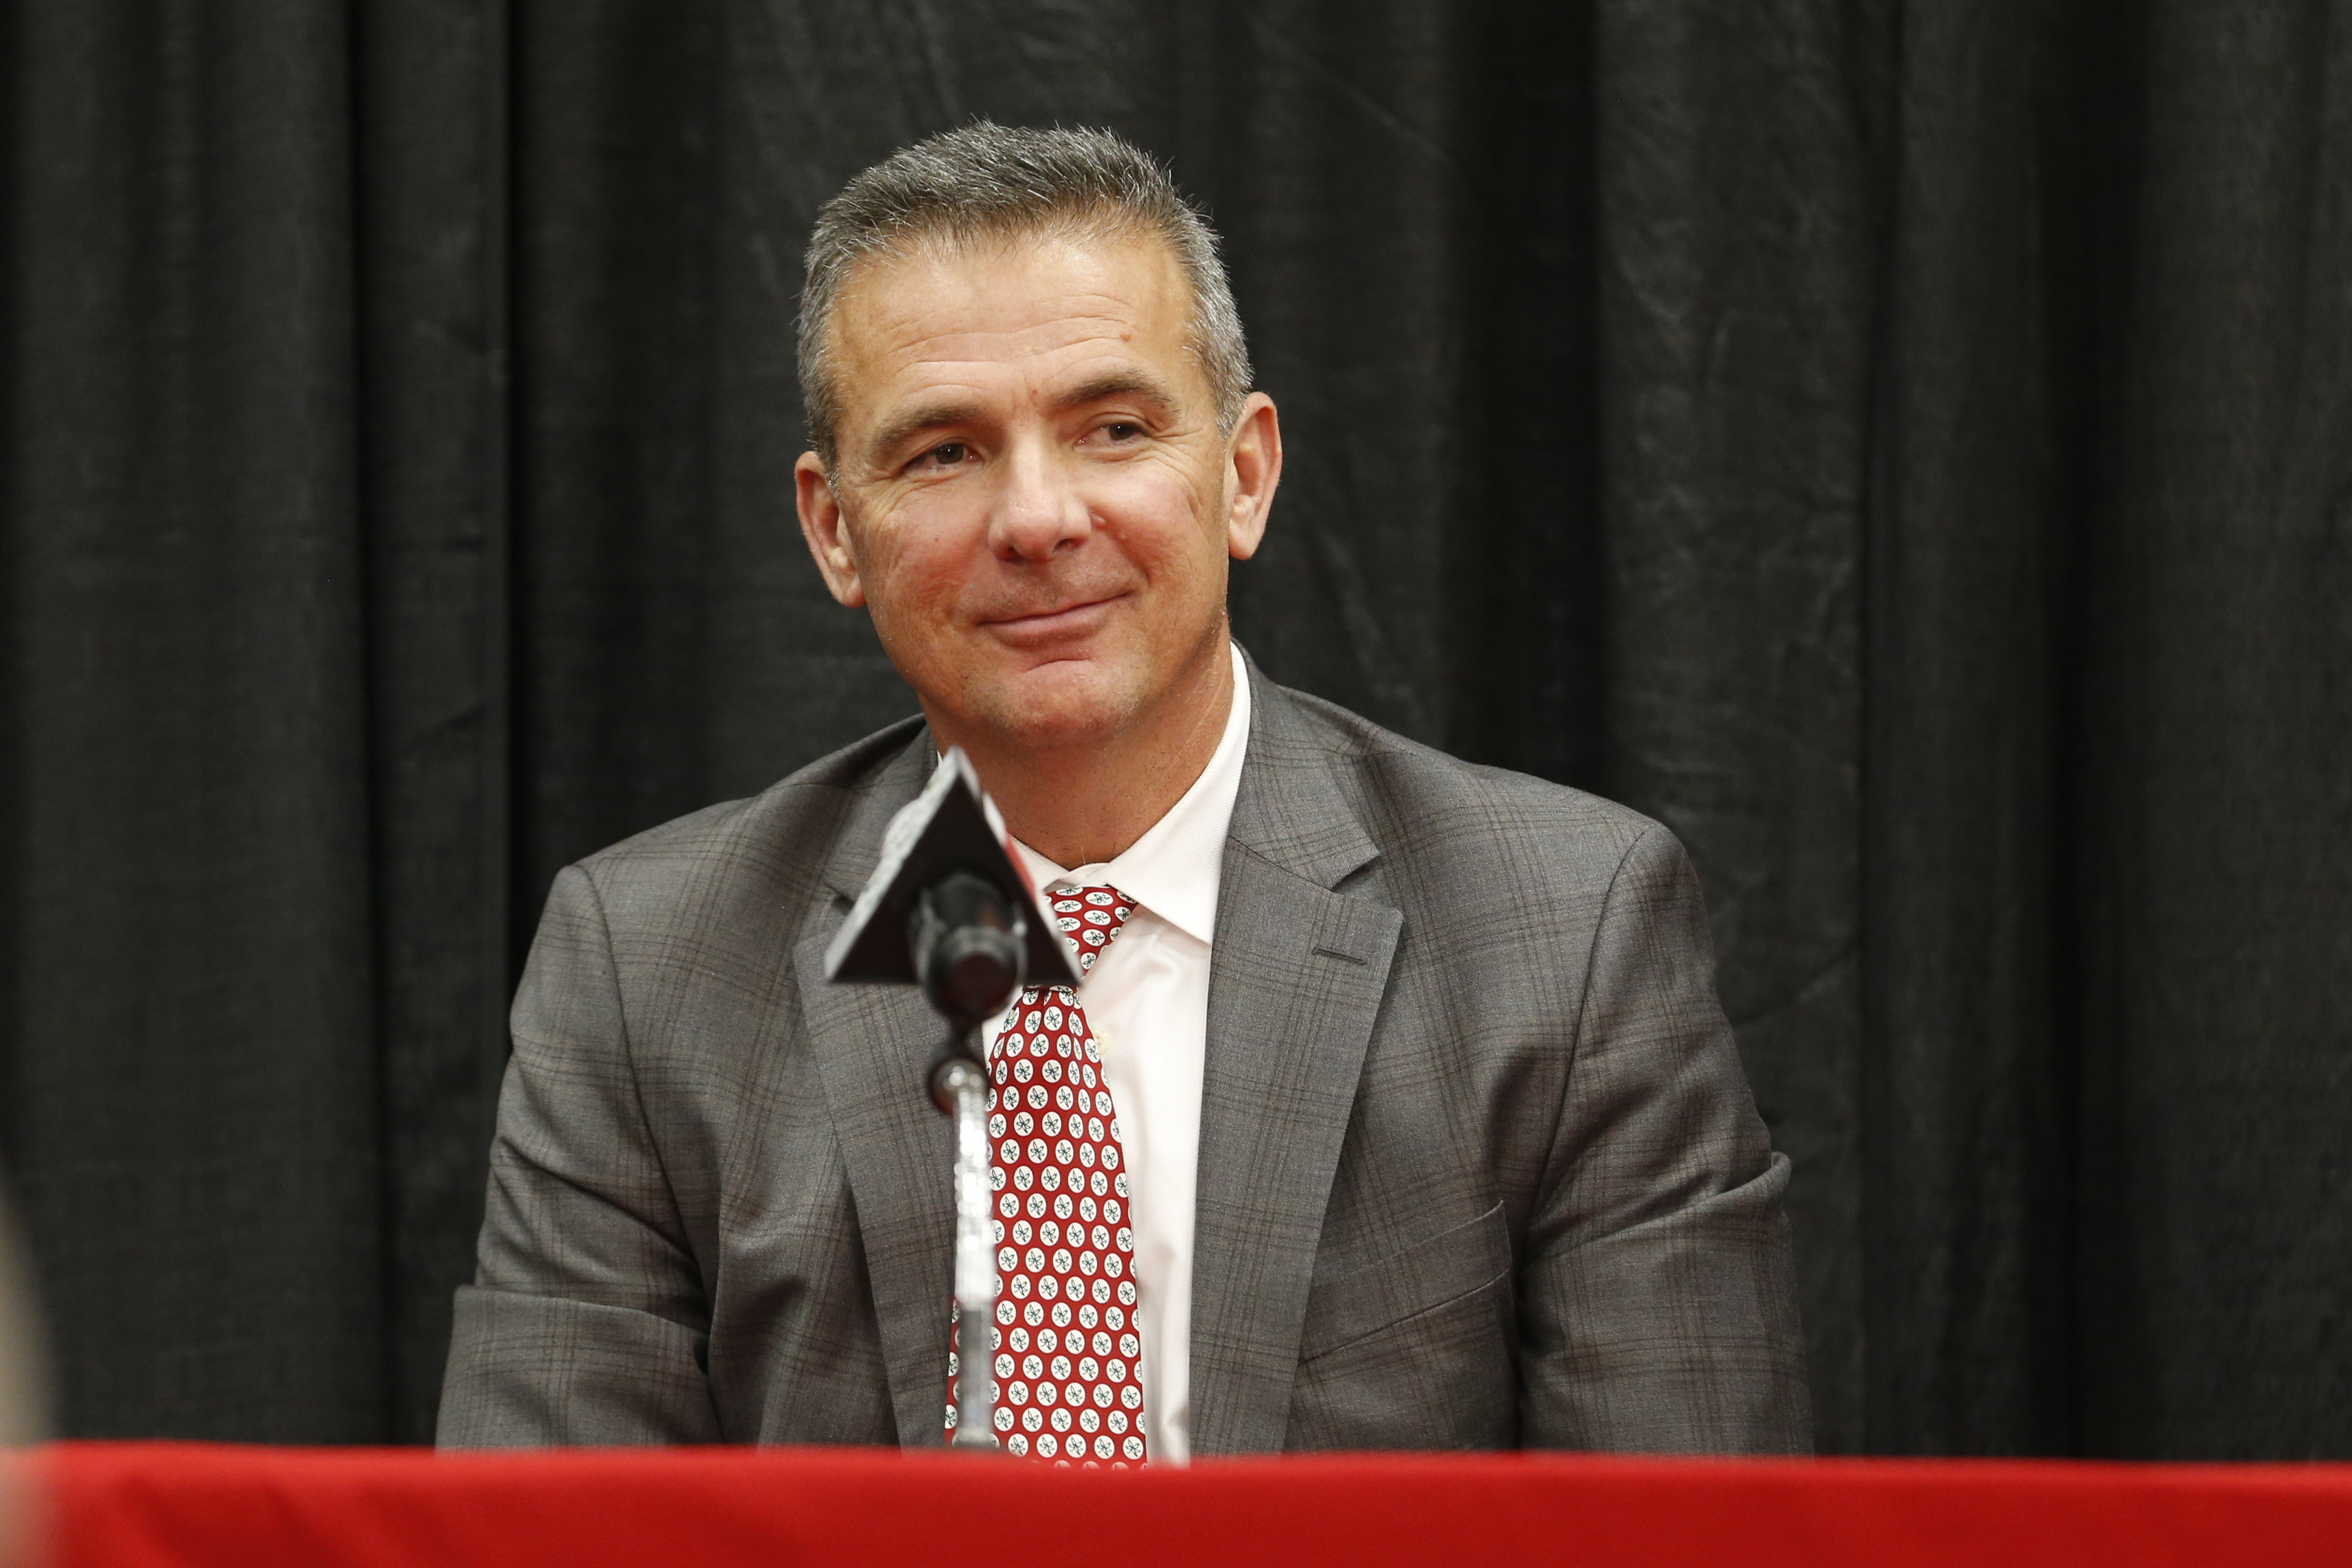 Ohio State head football coach Urban Meyer answers questions during a news conference announcing his retirement and the hiring of Ryan Day as his replacement Tuesday, Dec. 4, 2018, in Columbus, Ohio. (AP Photo/Jay LaPrete)